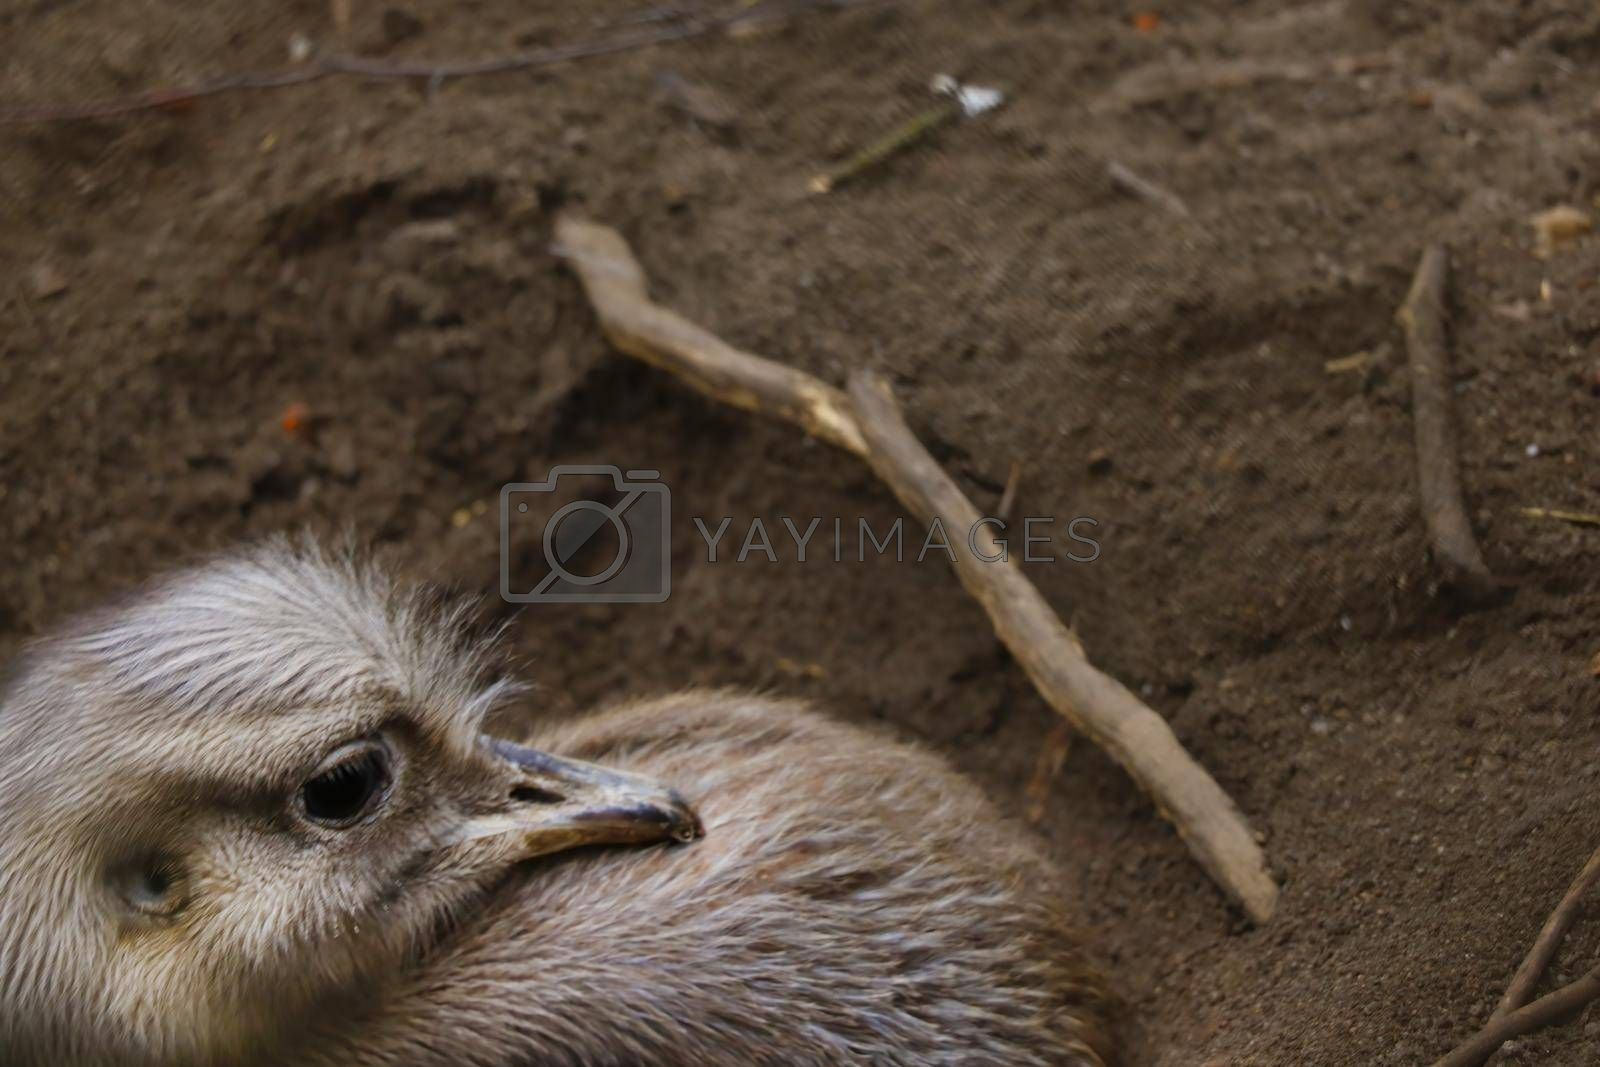 Royalty free image of Blurred background. Out of focus. Ostrich close-up. by kip02kas